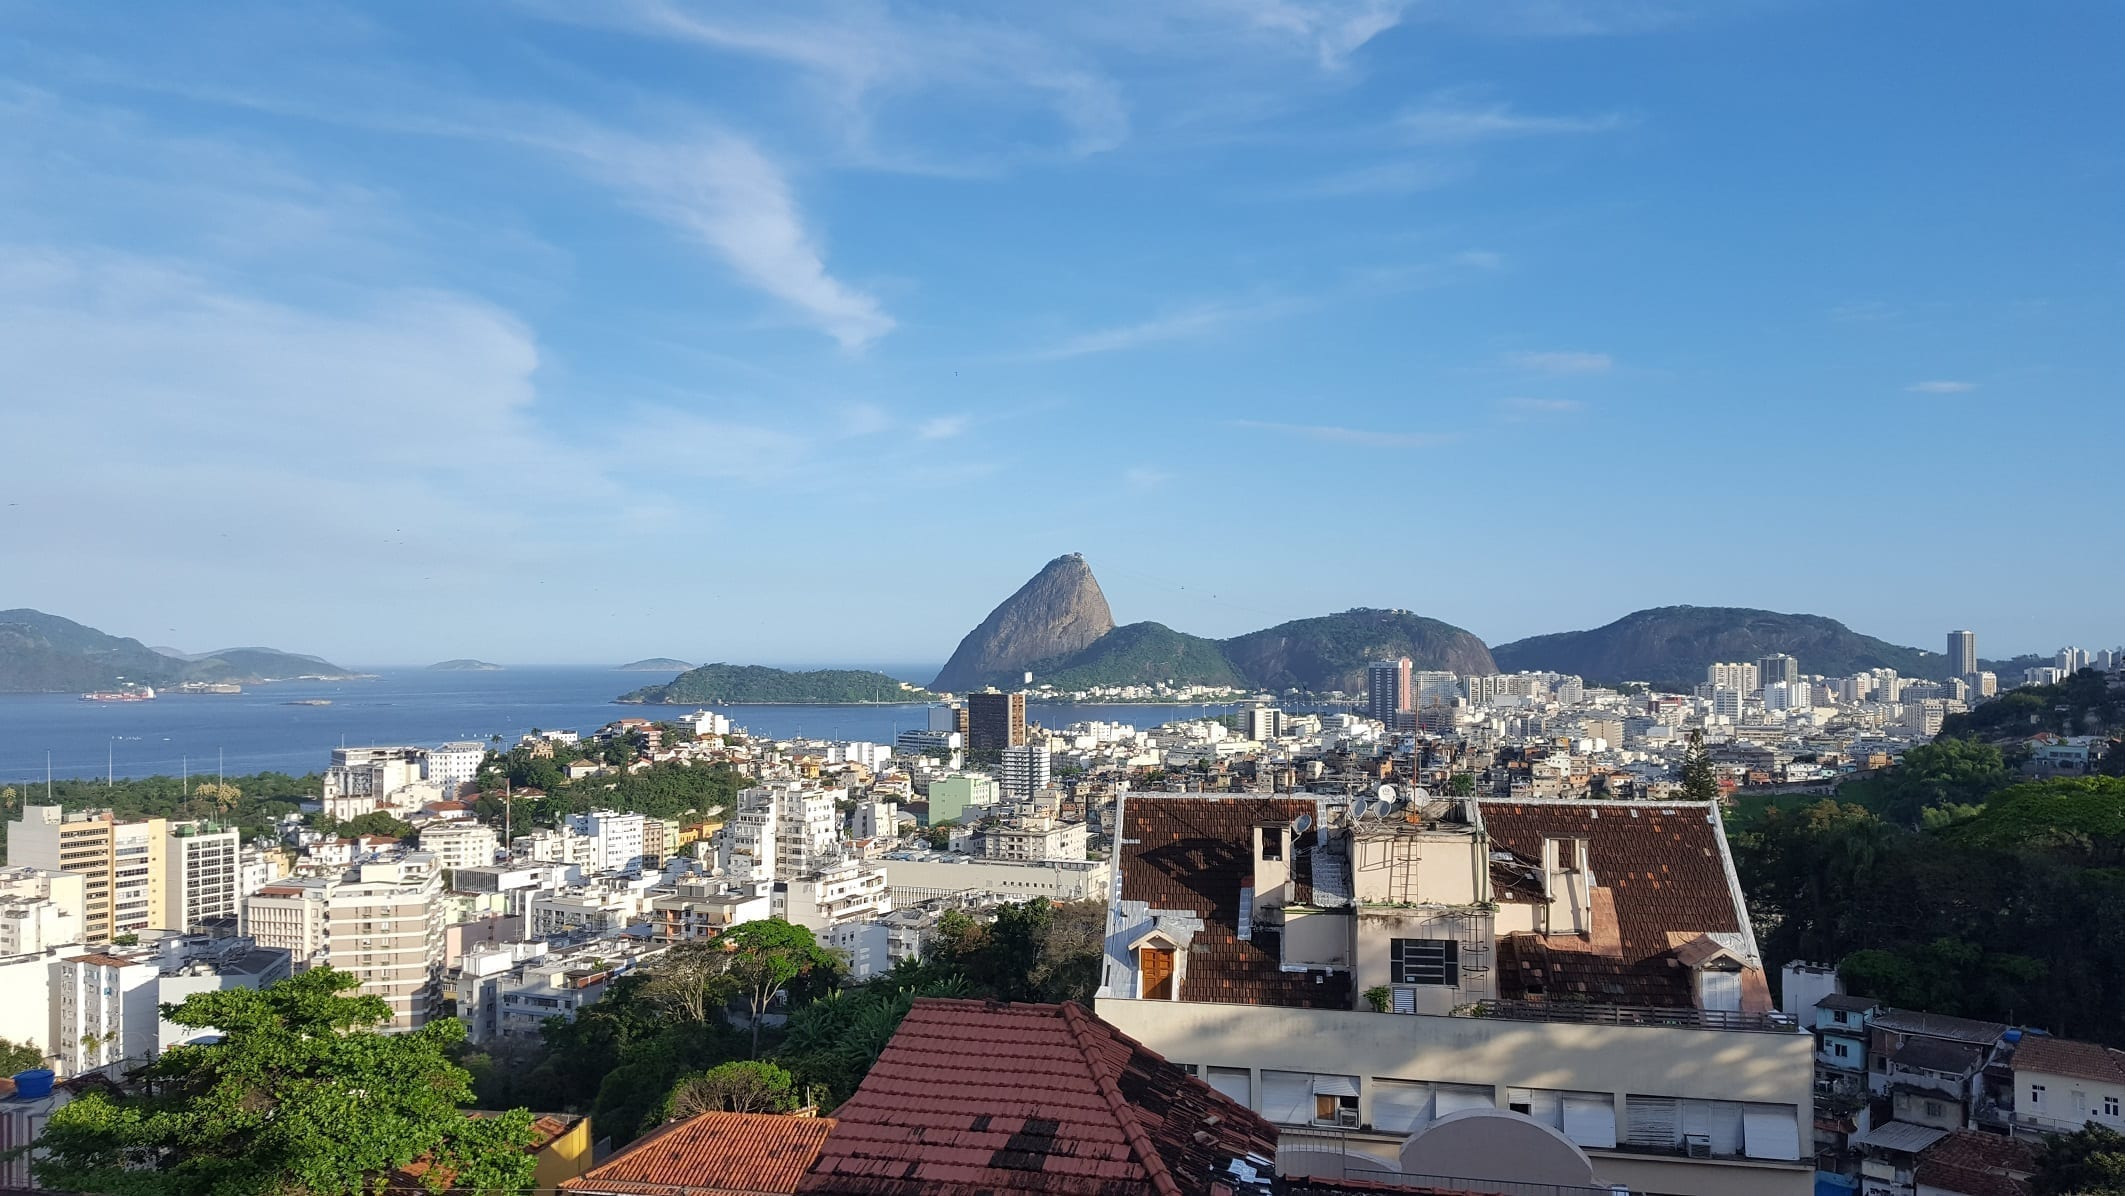 View of the Sugarloaf mountain from the top of Ruins Park in Santa Teresa